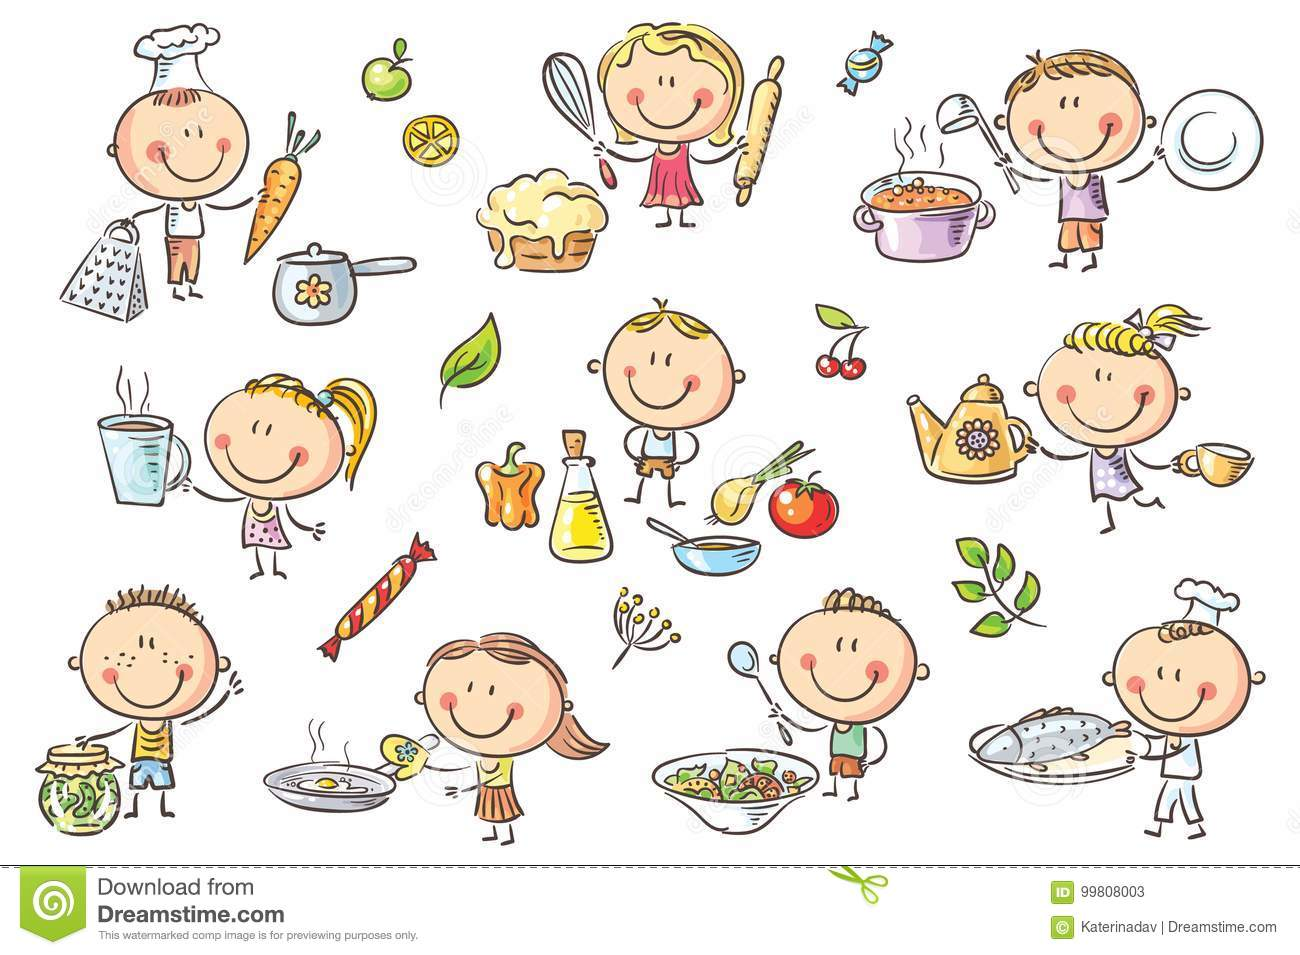 Cooking Stock Illustrations 562 858 Cooking Stock Illustrations Vectors Clipart Dreamstime